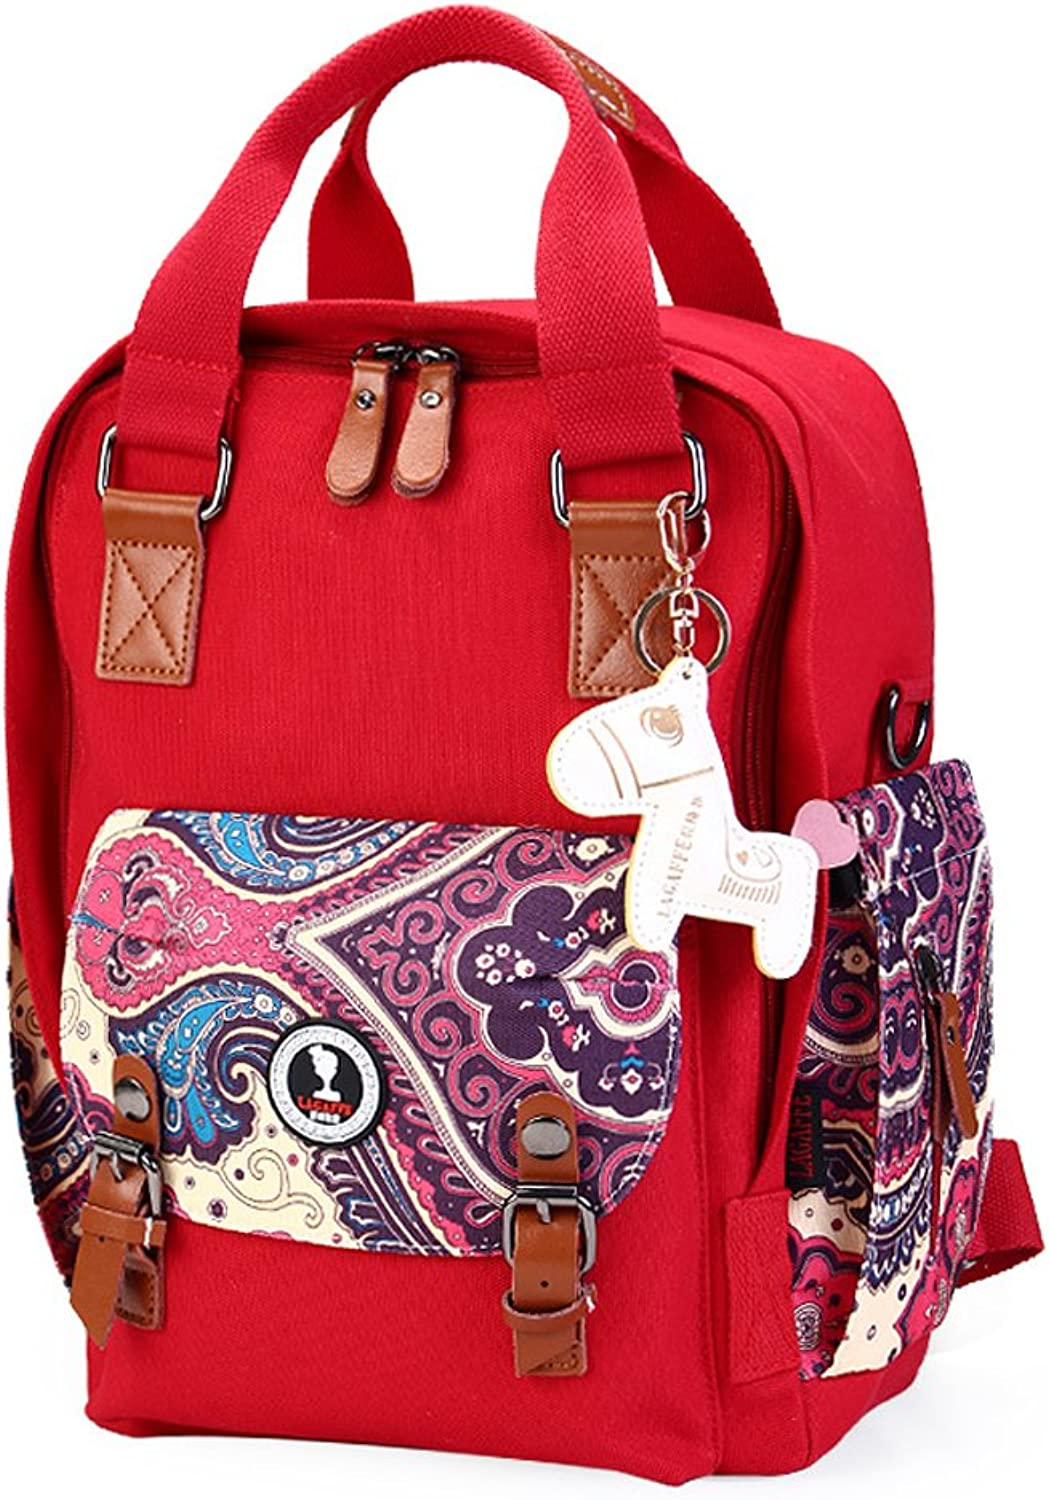 Multifunctional Large Mummy Backpack Crossbody Bag Canvas Anti-theif 16.2L